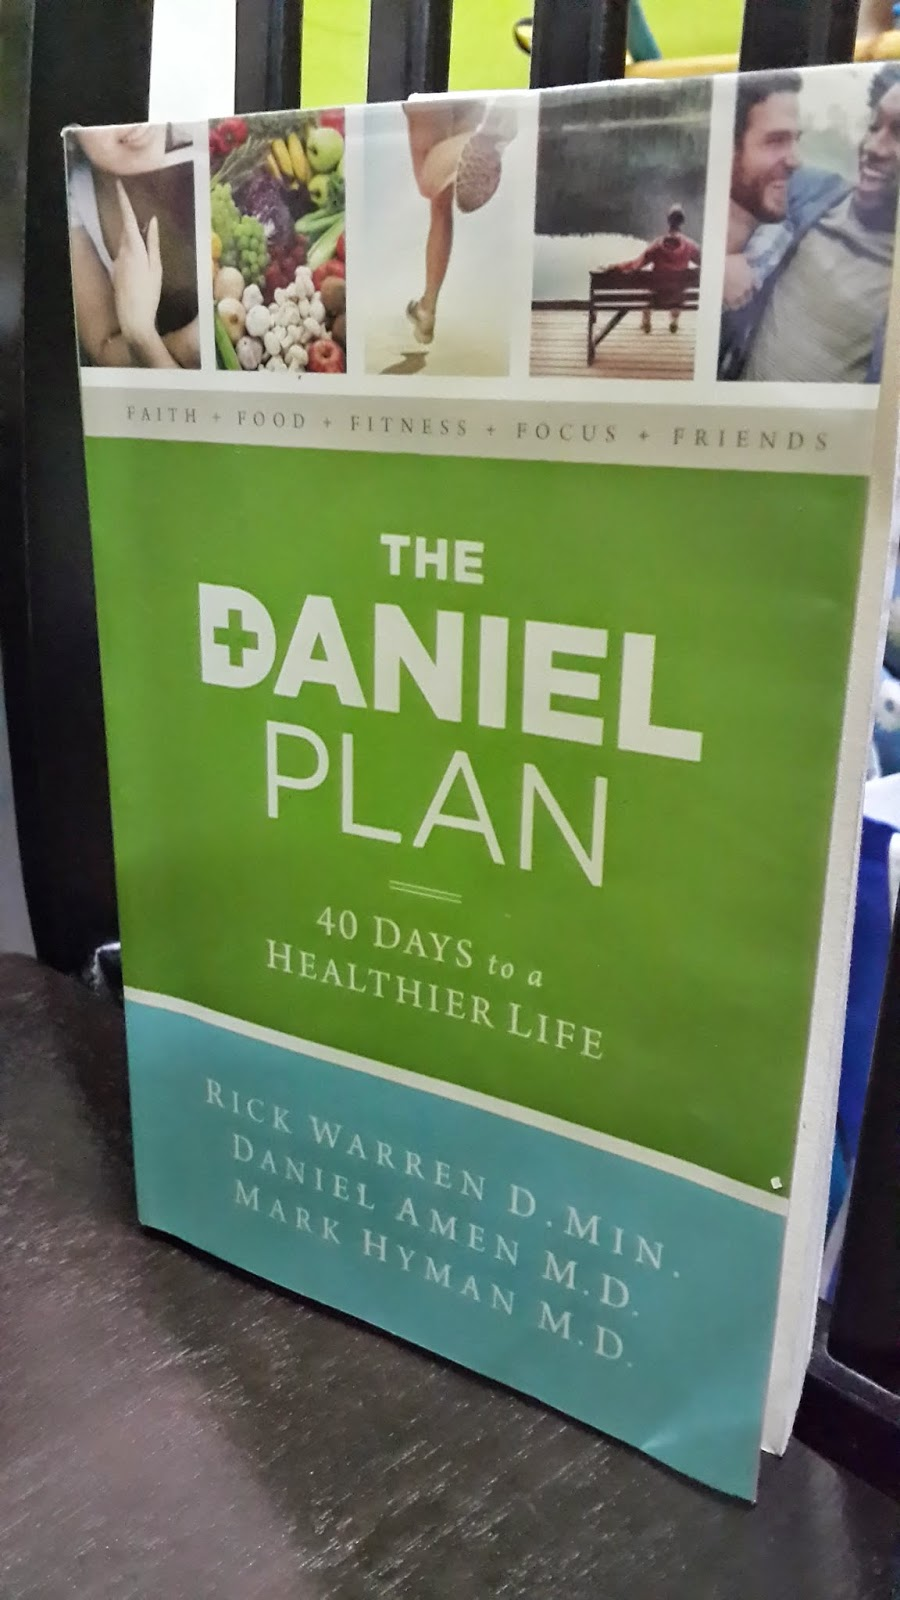 Weight Loss Diet: The Daniel Plan by Rick Warren